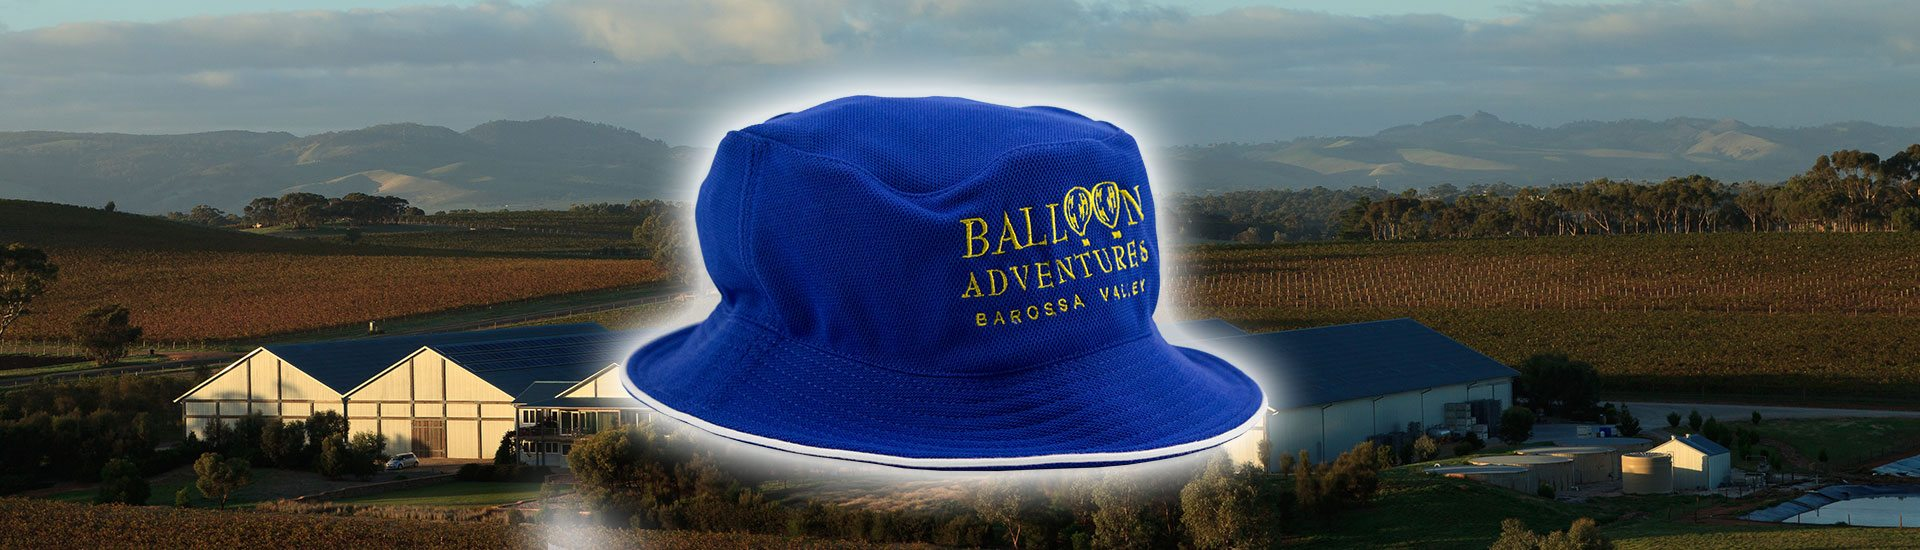 balloon-adventures-flights-over-the-barossa-valley-merchandise-blue-hat